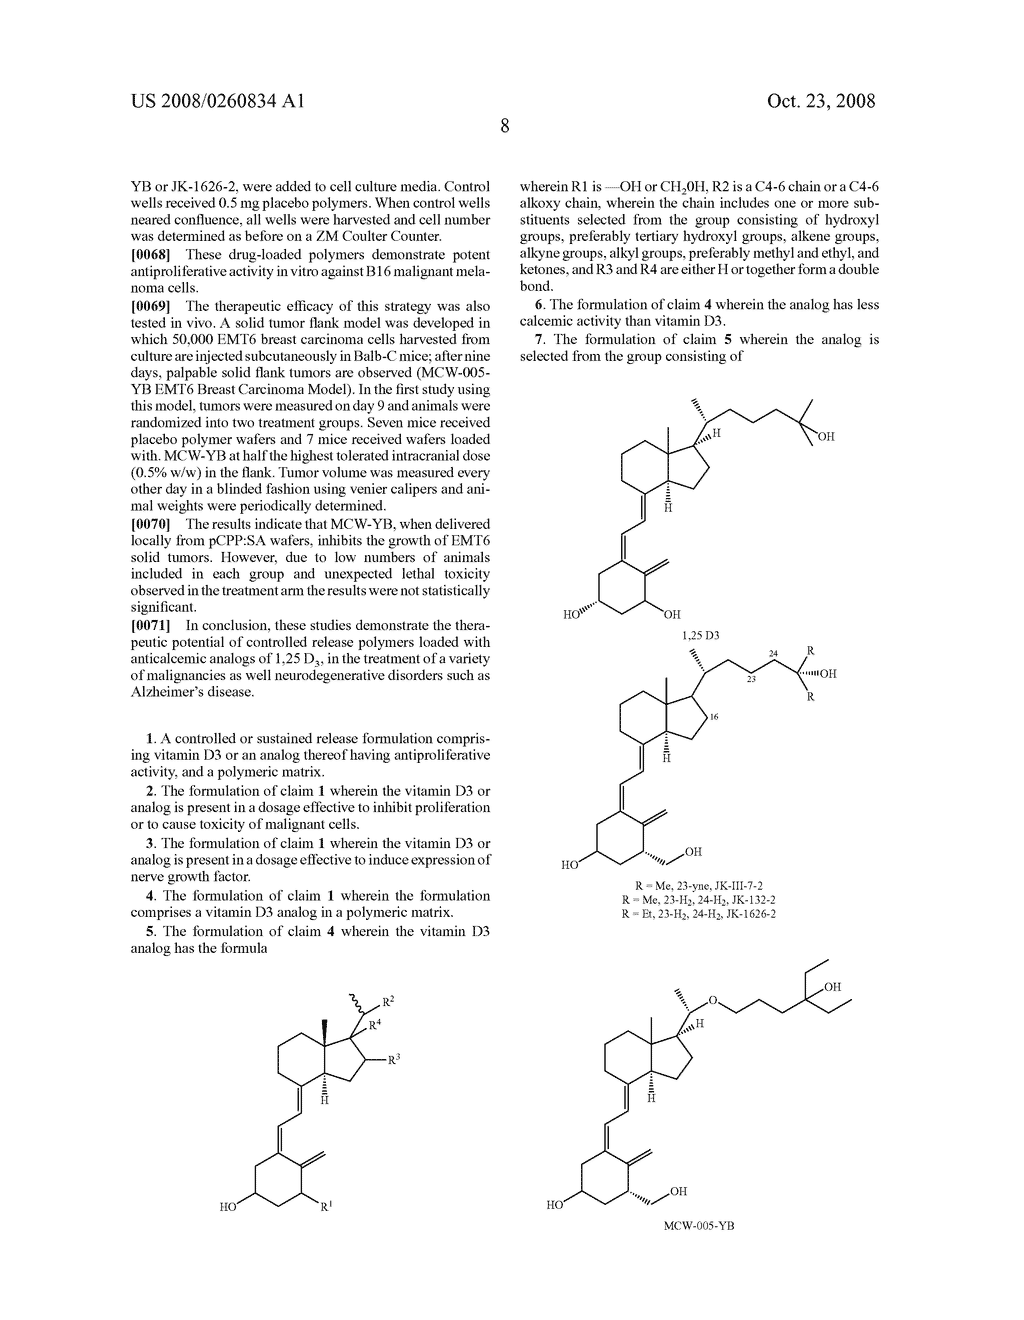 VITAMIN D3 ANALOG LOADED POLYMER FORMULATIONS FOR CANCER AND NEURODEGENERATIVE DISORDERS - diagram, schematic, and image 11